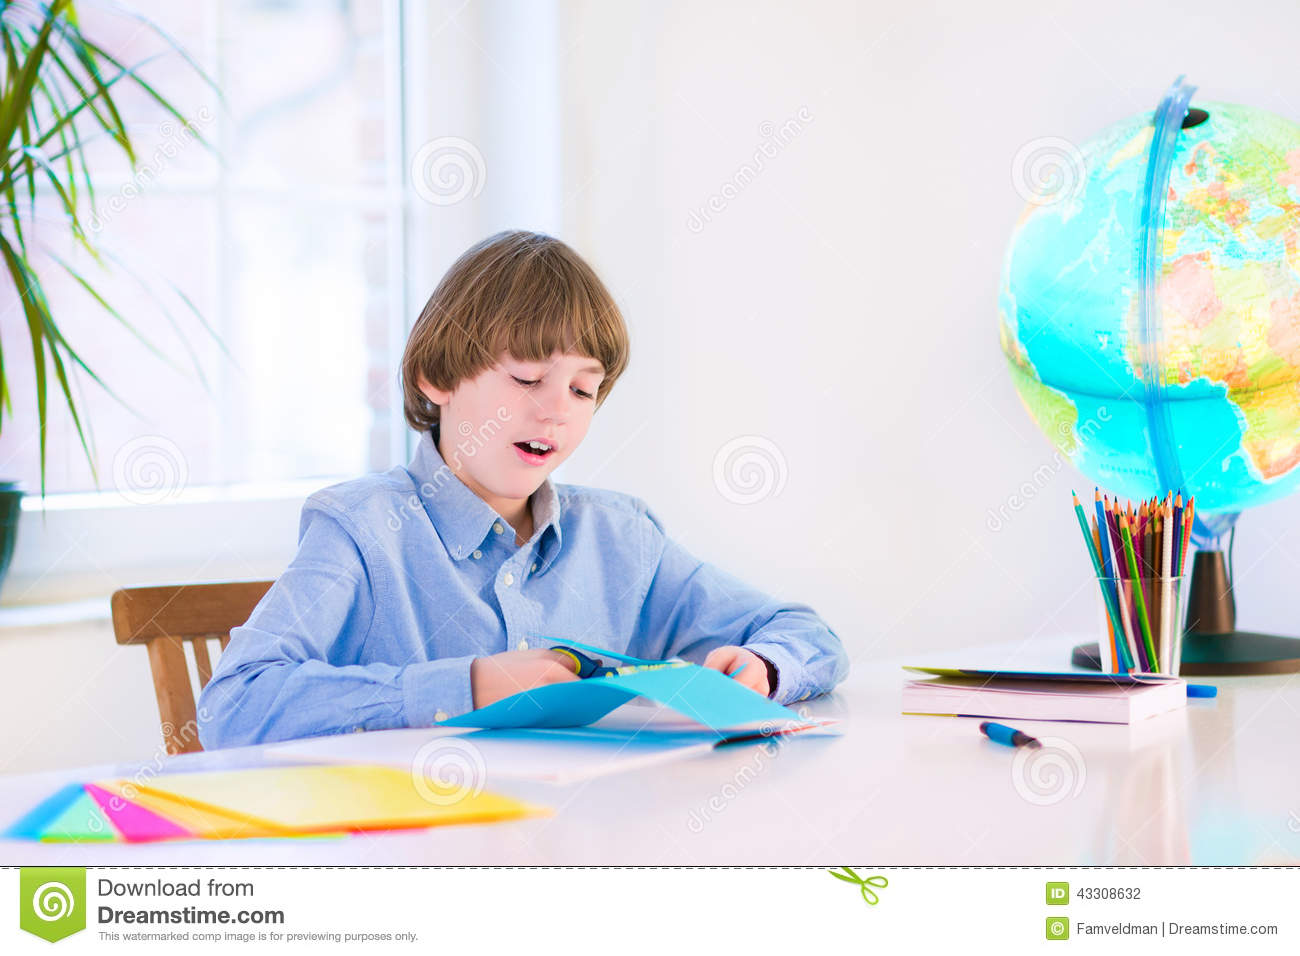 little boy essay Little boy essay examples 15 total results a history of the atomic bombing of hiroshima by the united states 1,204 words 3 pages  a conversation of a store owner and a little boy in chicken soup for the soul by dan clark 361 words 1 page.